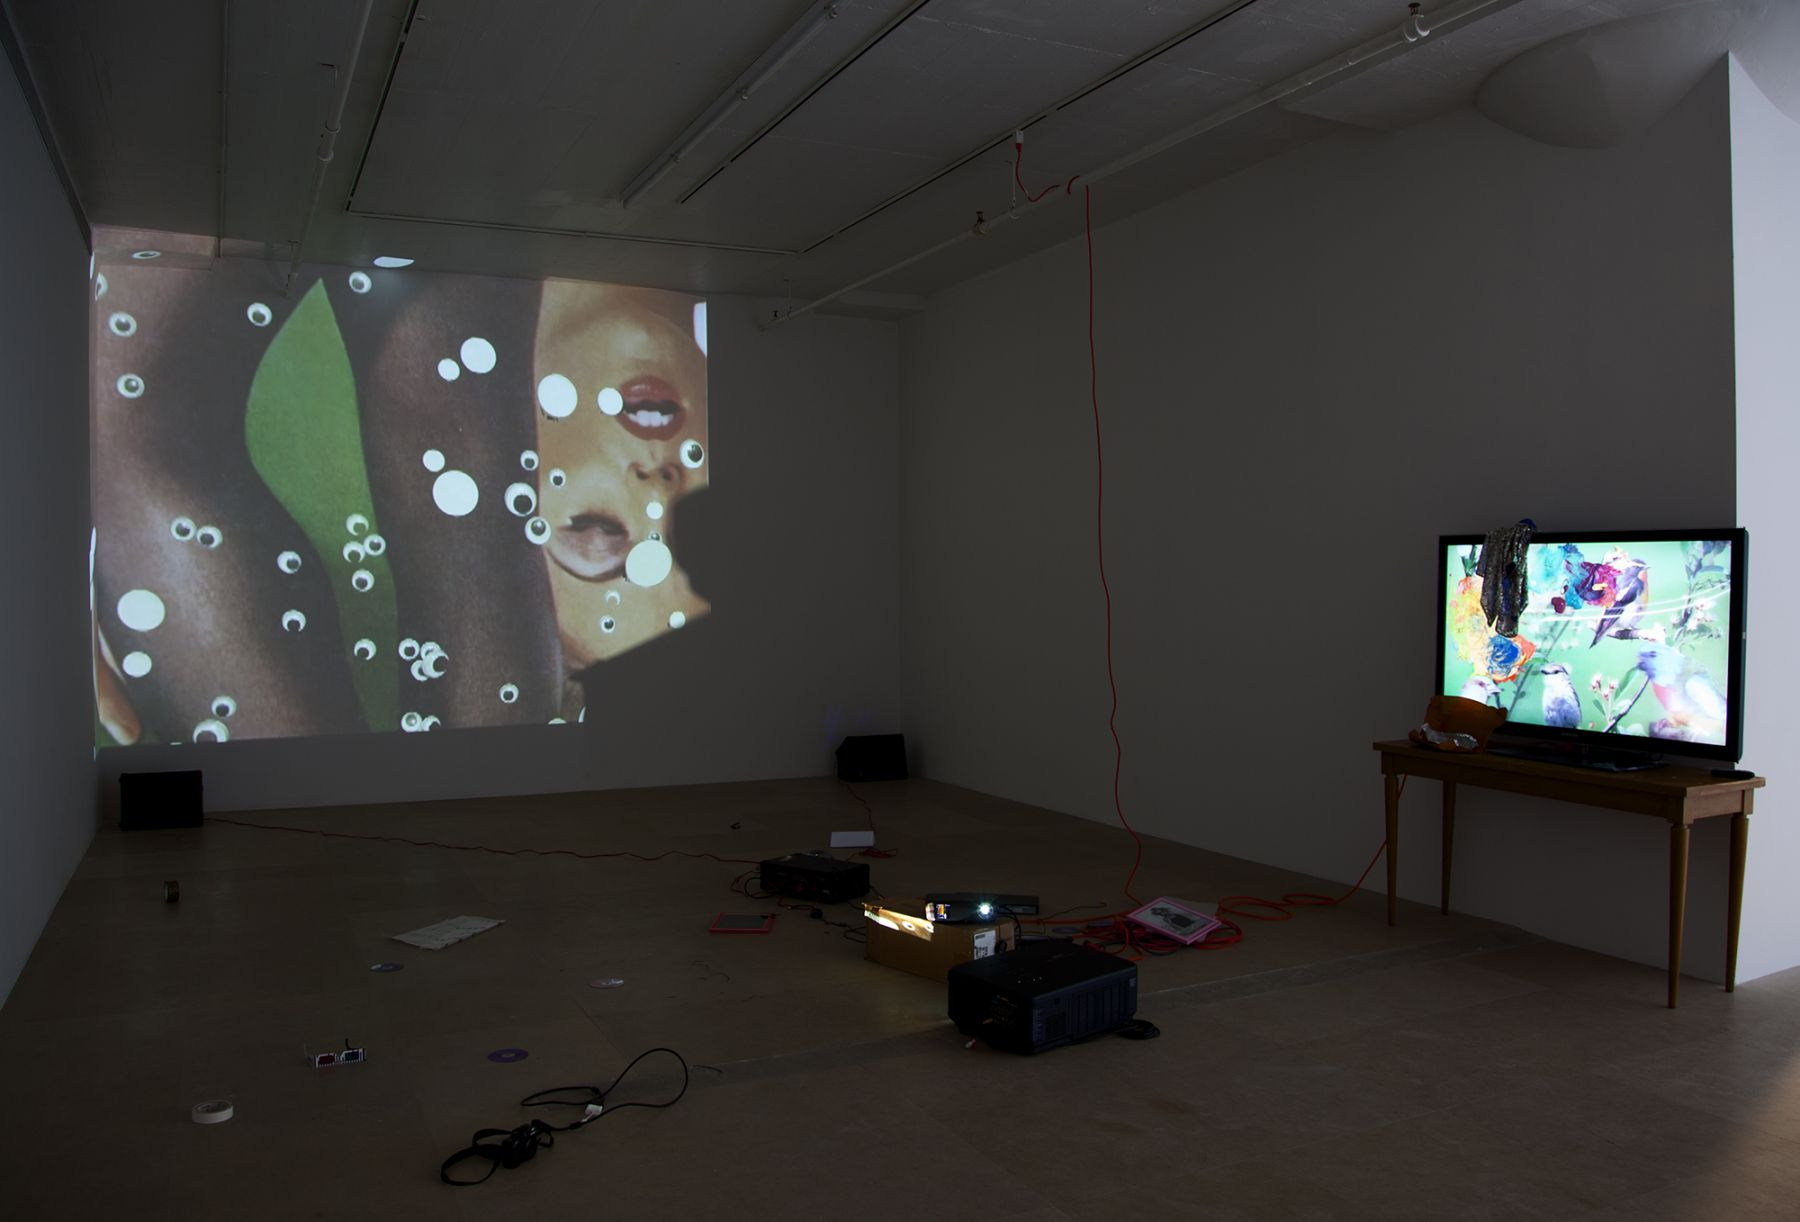 Trisha Baga, Peacock, 2011, Video installation, Dimensions variable